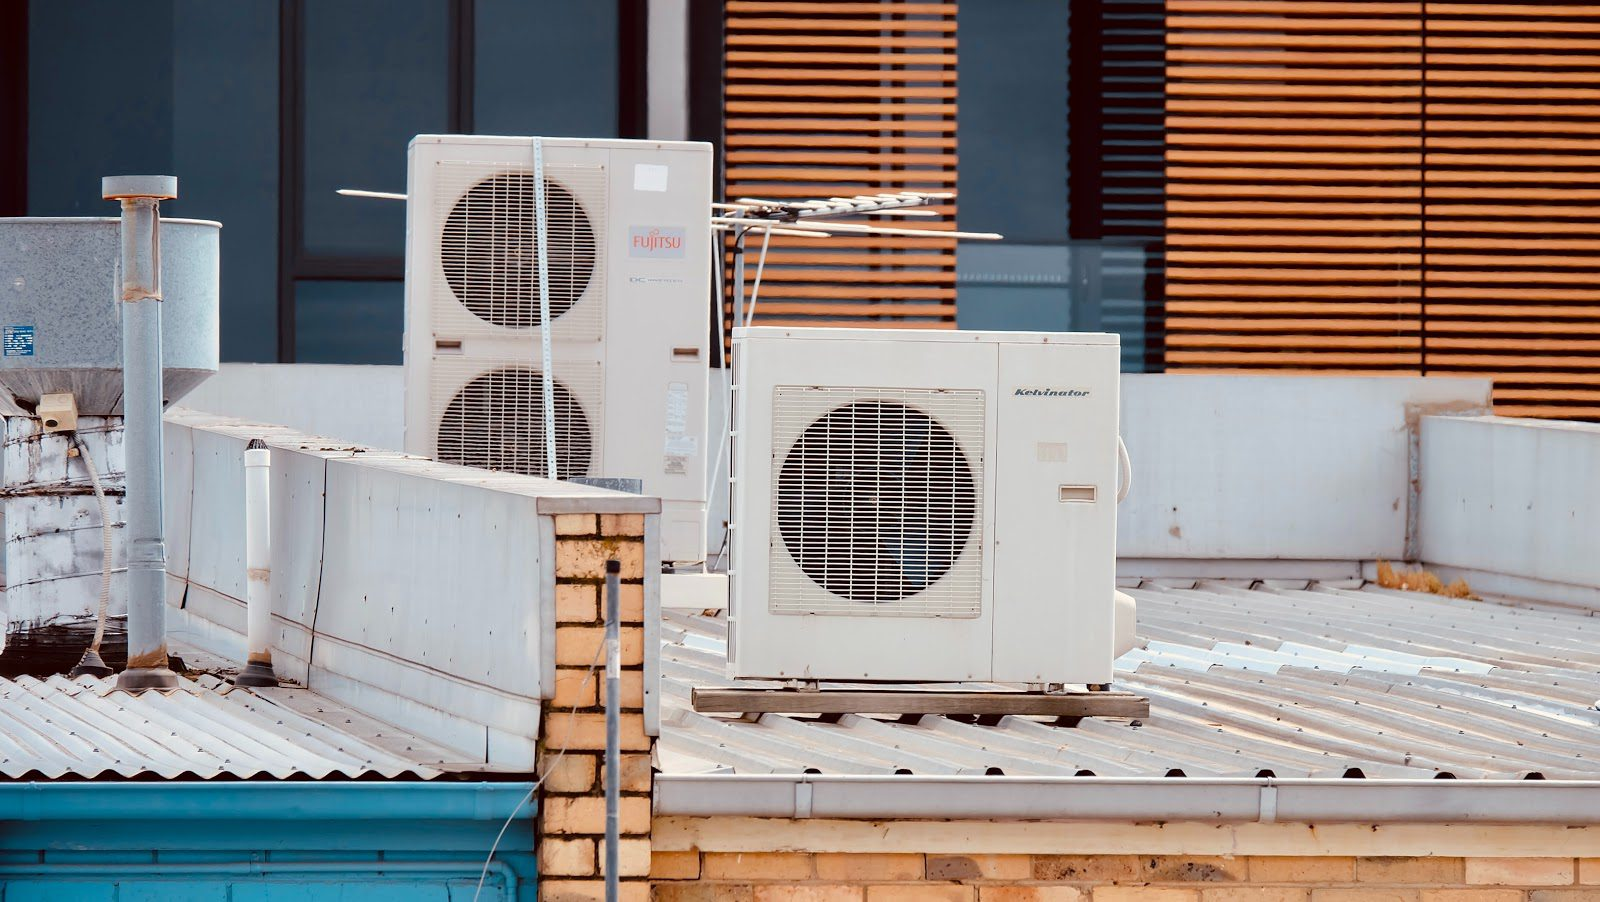 Nashville HVAC Repair - benefits of having your HVAC systems serviced and maintained